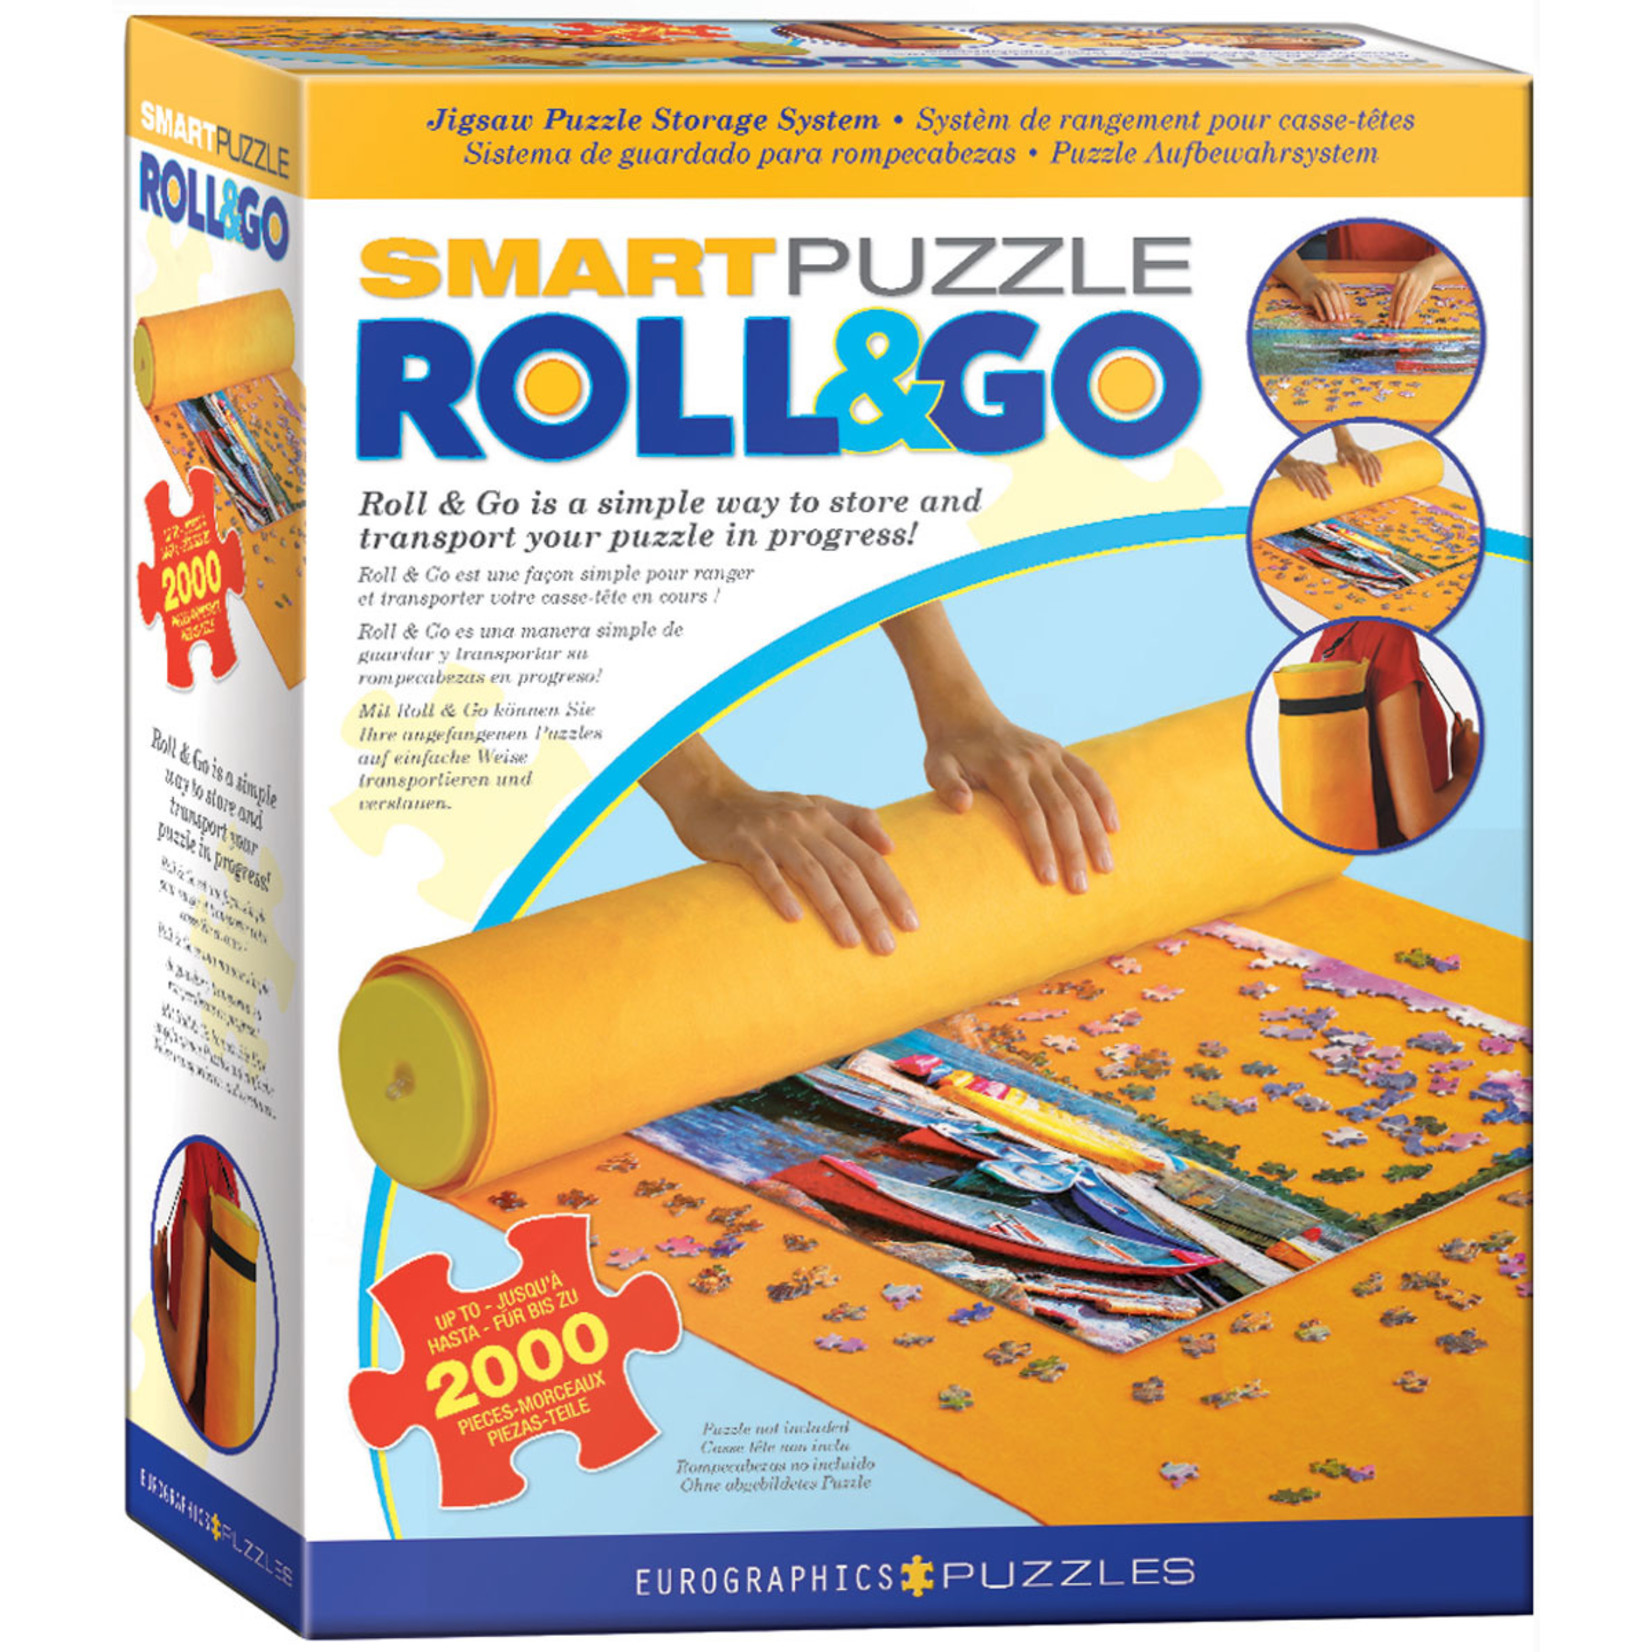 EuroGraphics Puzzles Smart Puzzle Roll & Go Mat